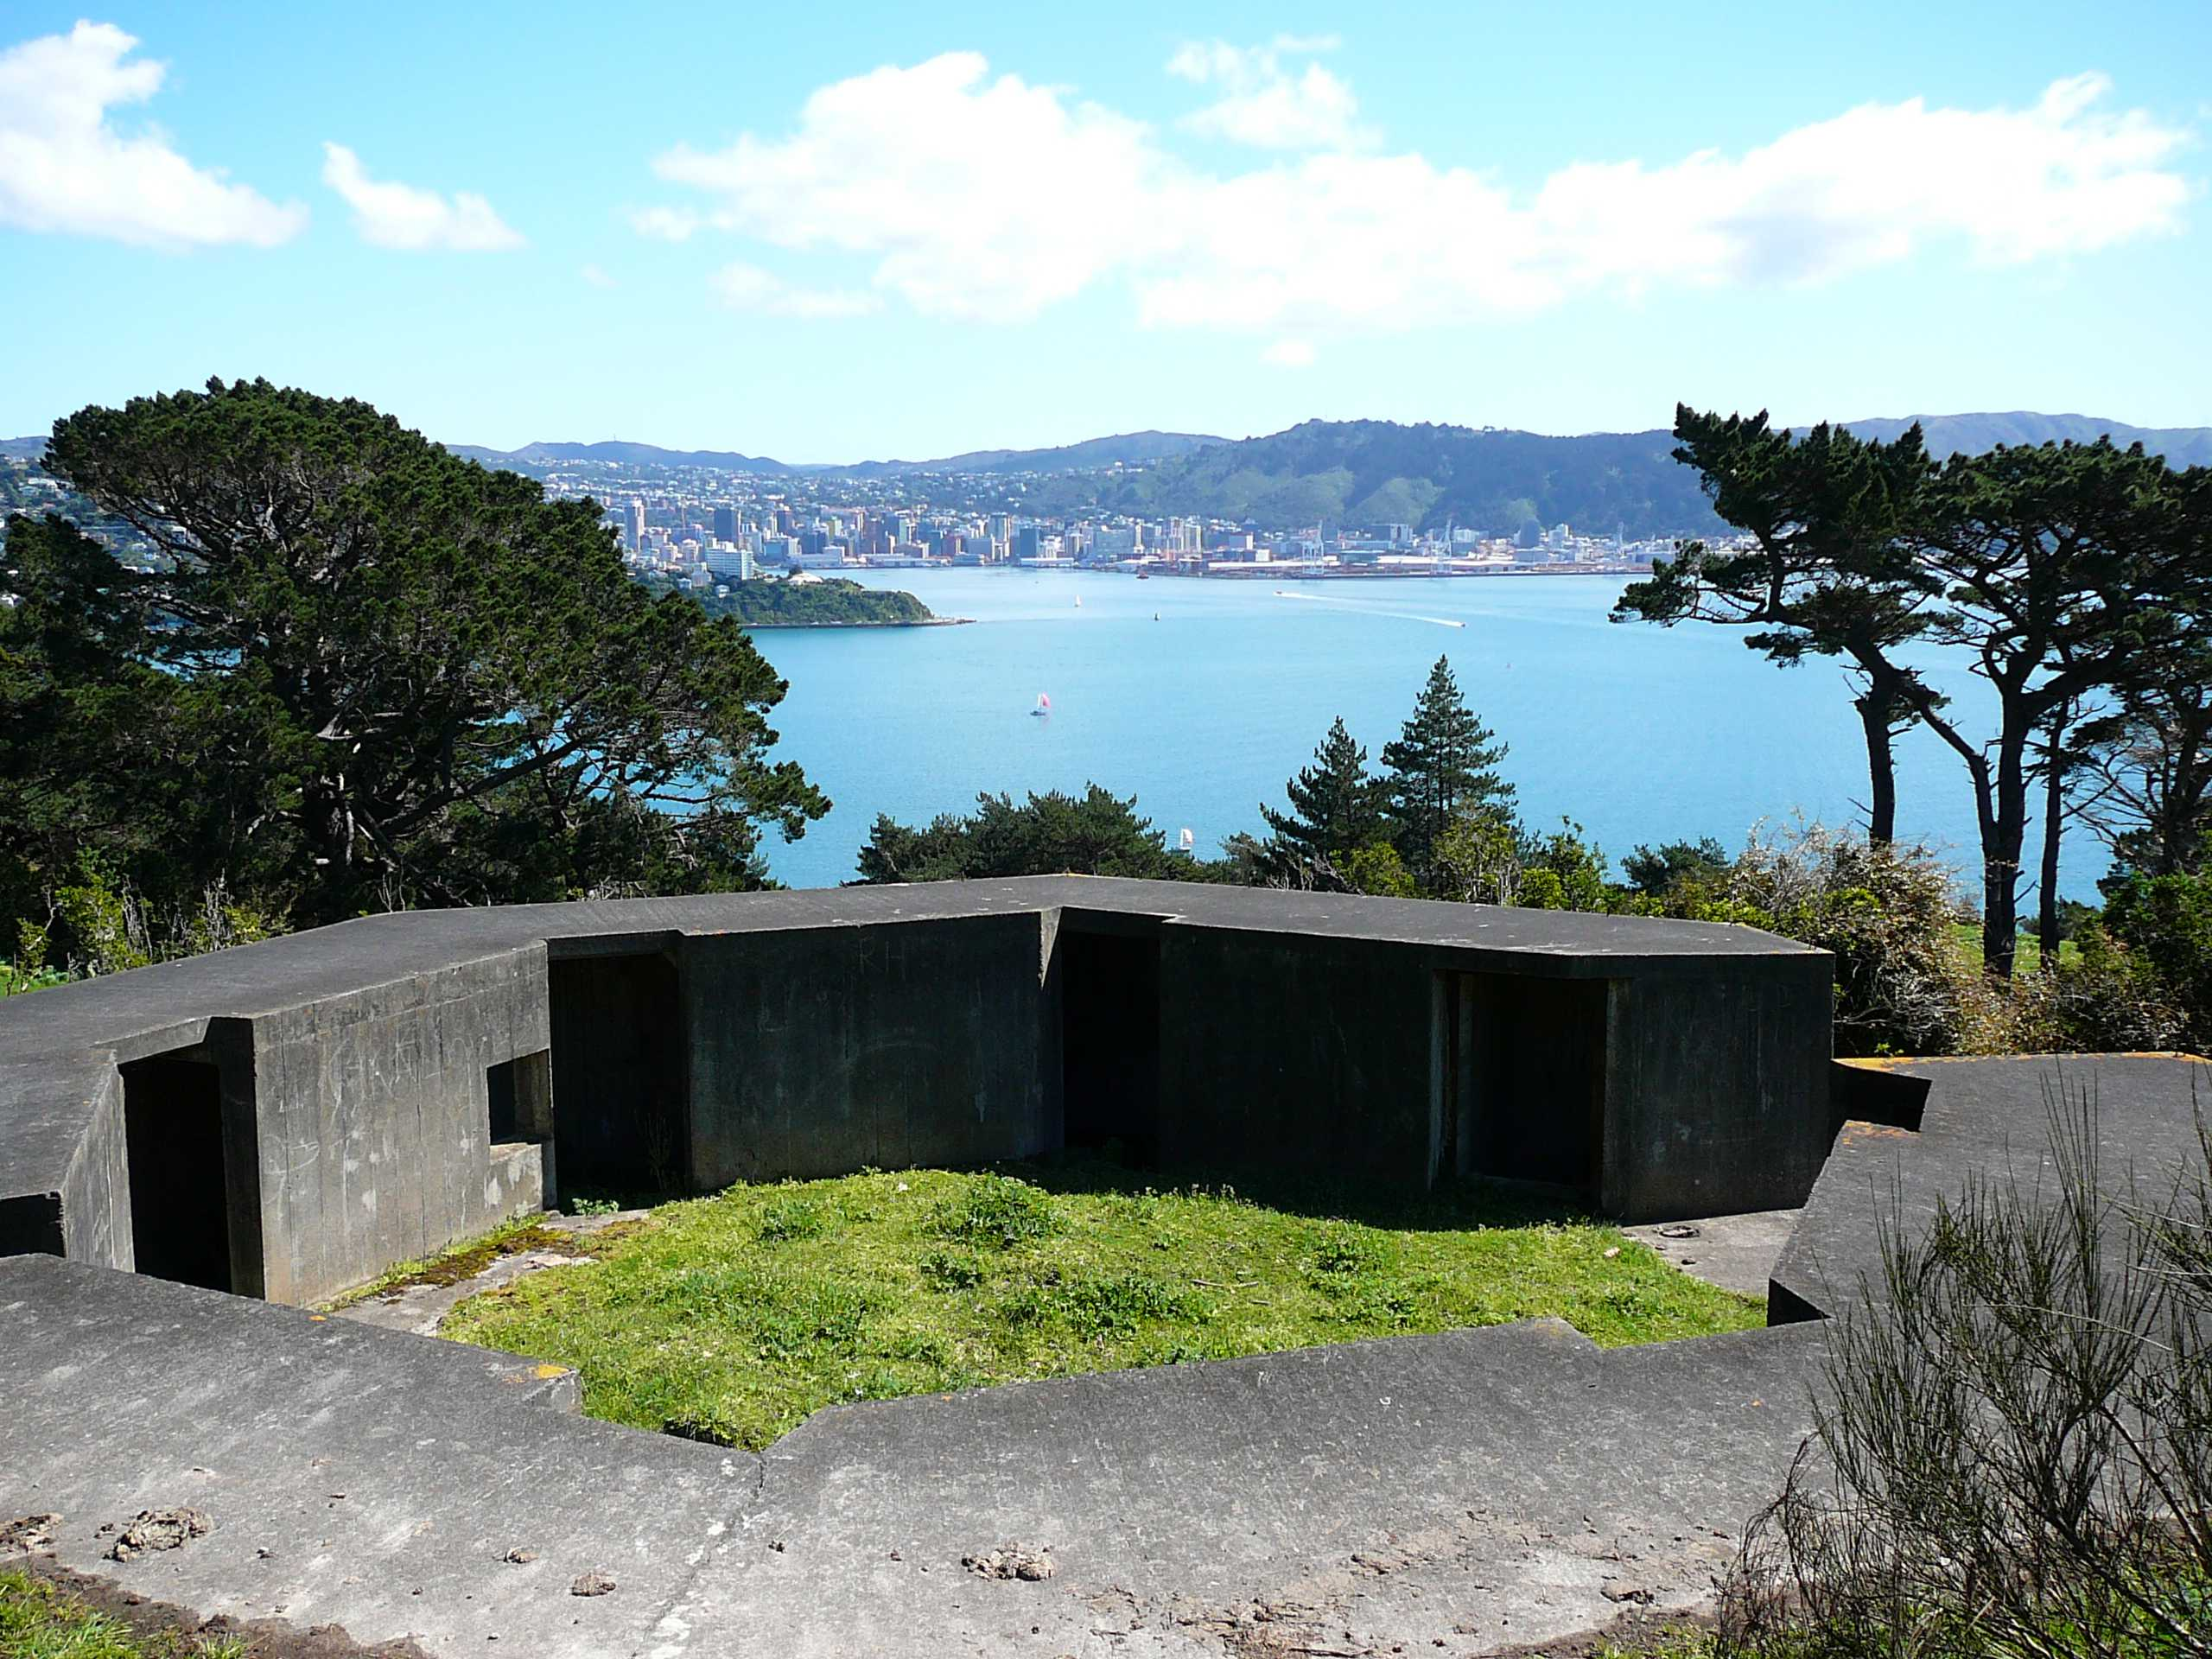 City from the gun emplacements